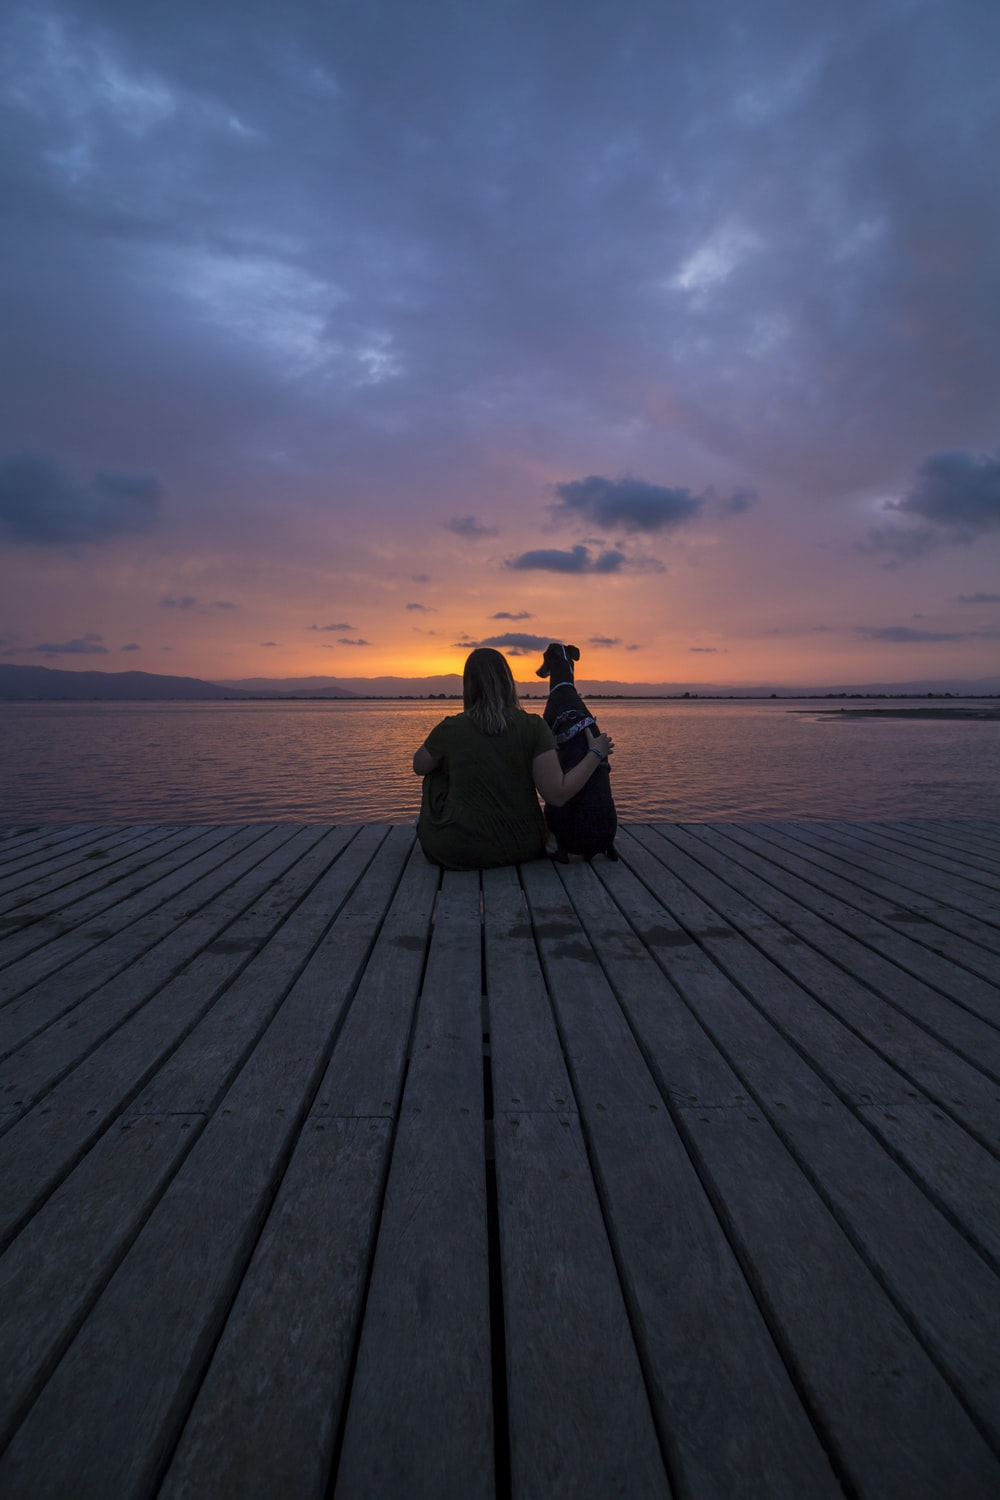 woman in black jacket sitting on wooden dock during sunset